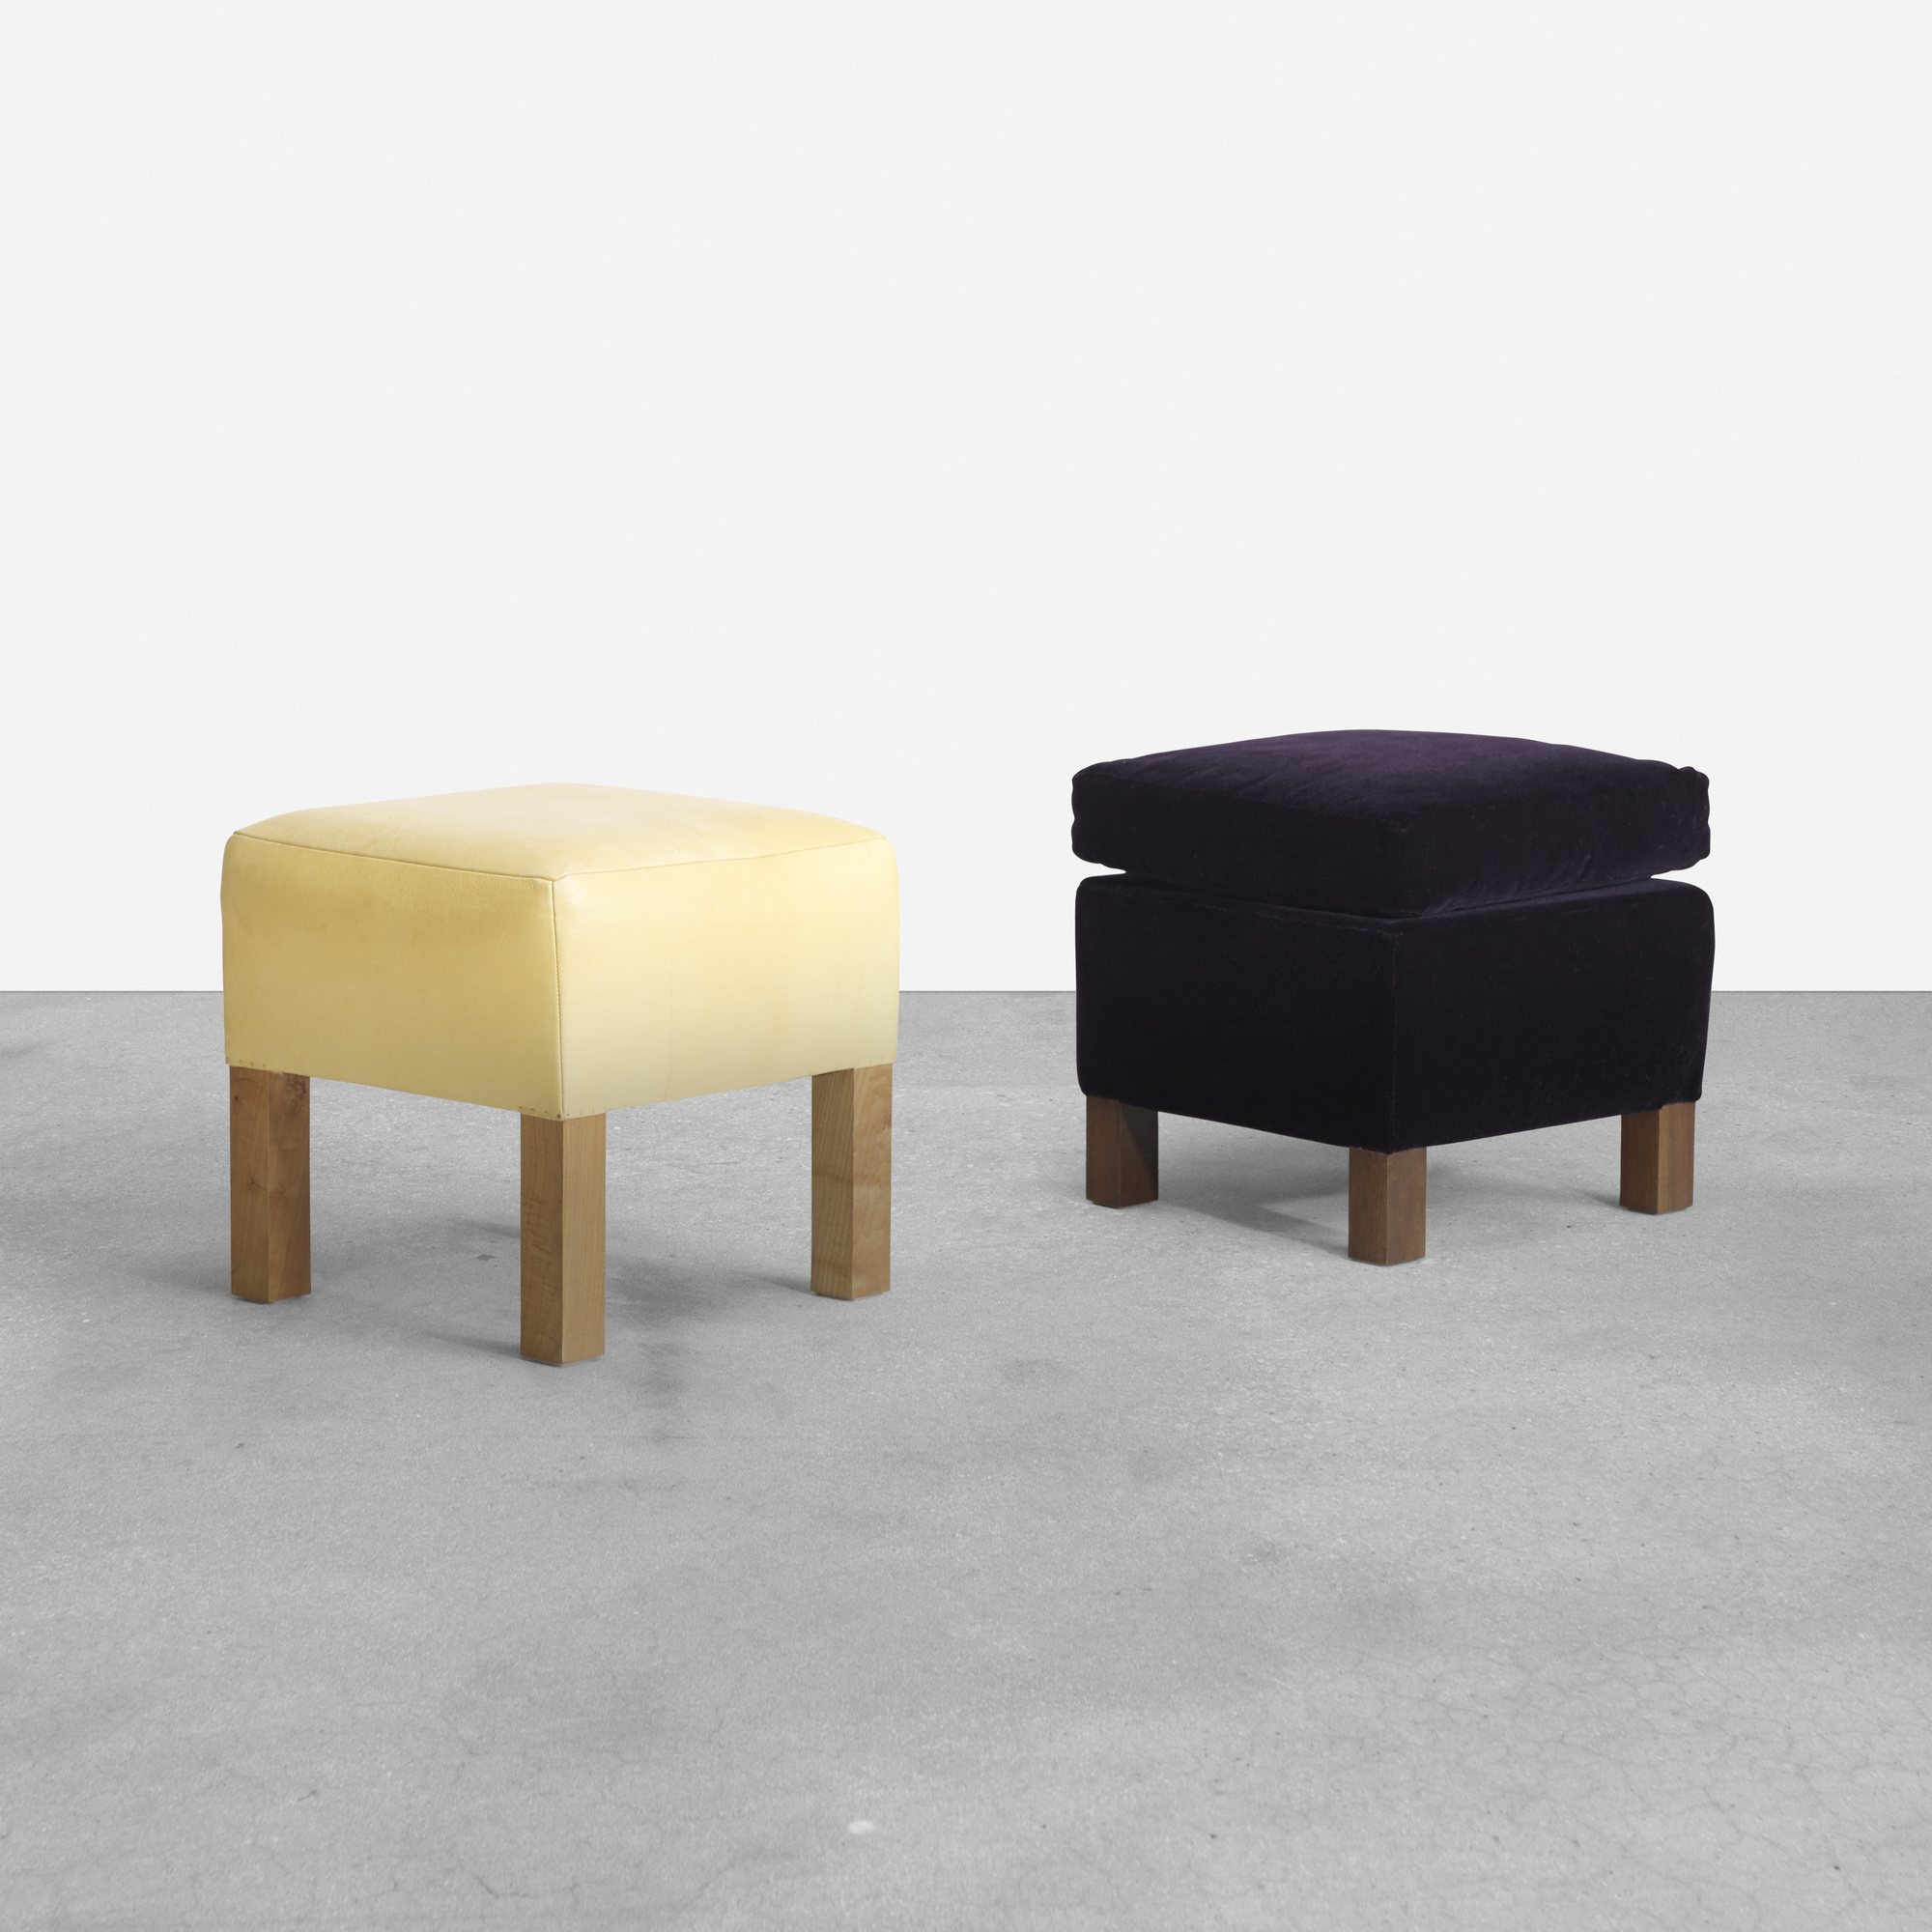 294: Roy McMakin / pair of ottomans for the Young residence, Chicago (1 of 2)